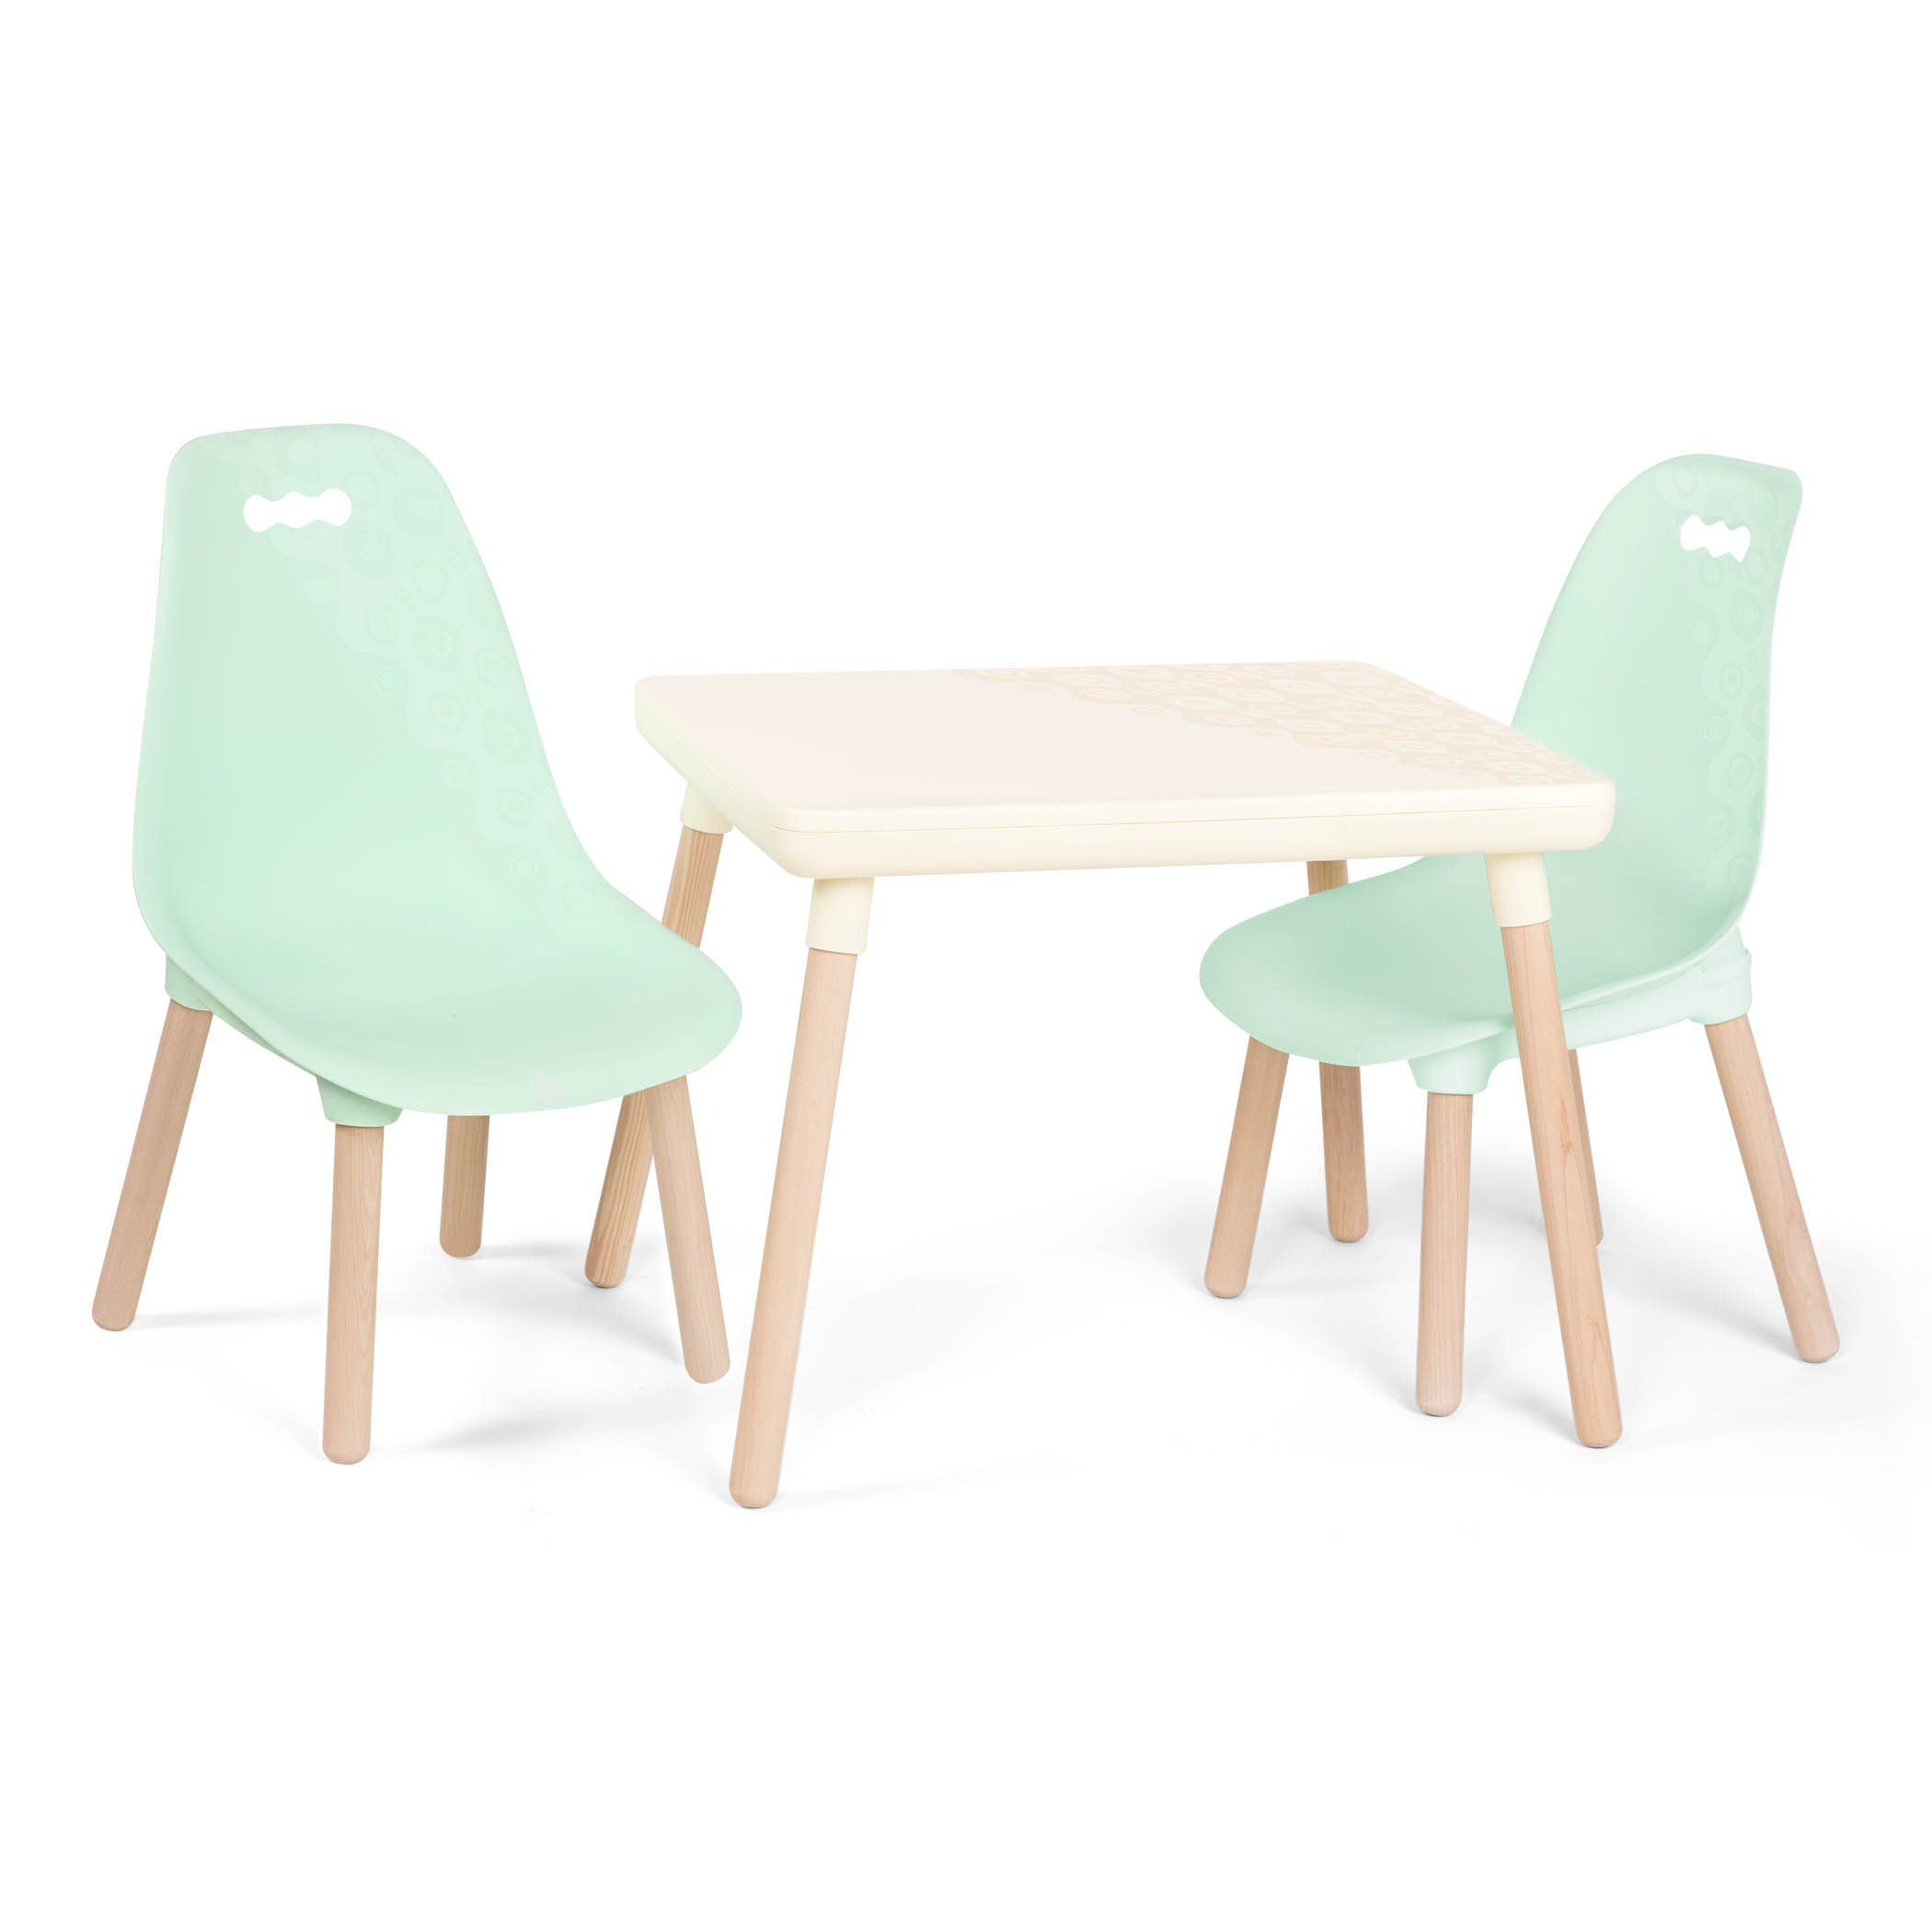 b spaces by battat kid century modern trendy kids table and chairs 1 62243340862 ebay. Black Bedroom Furniture Sets. Home Design Ideas